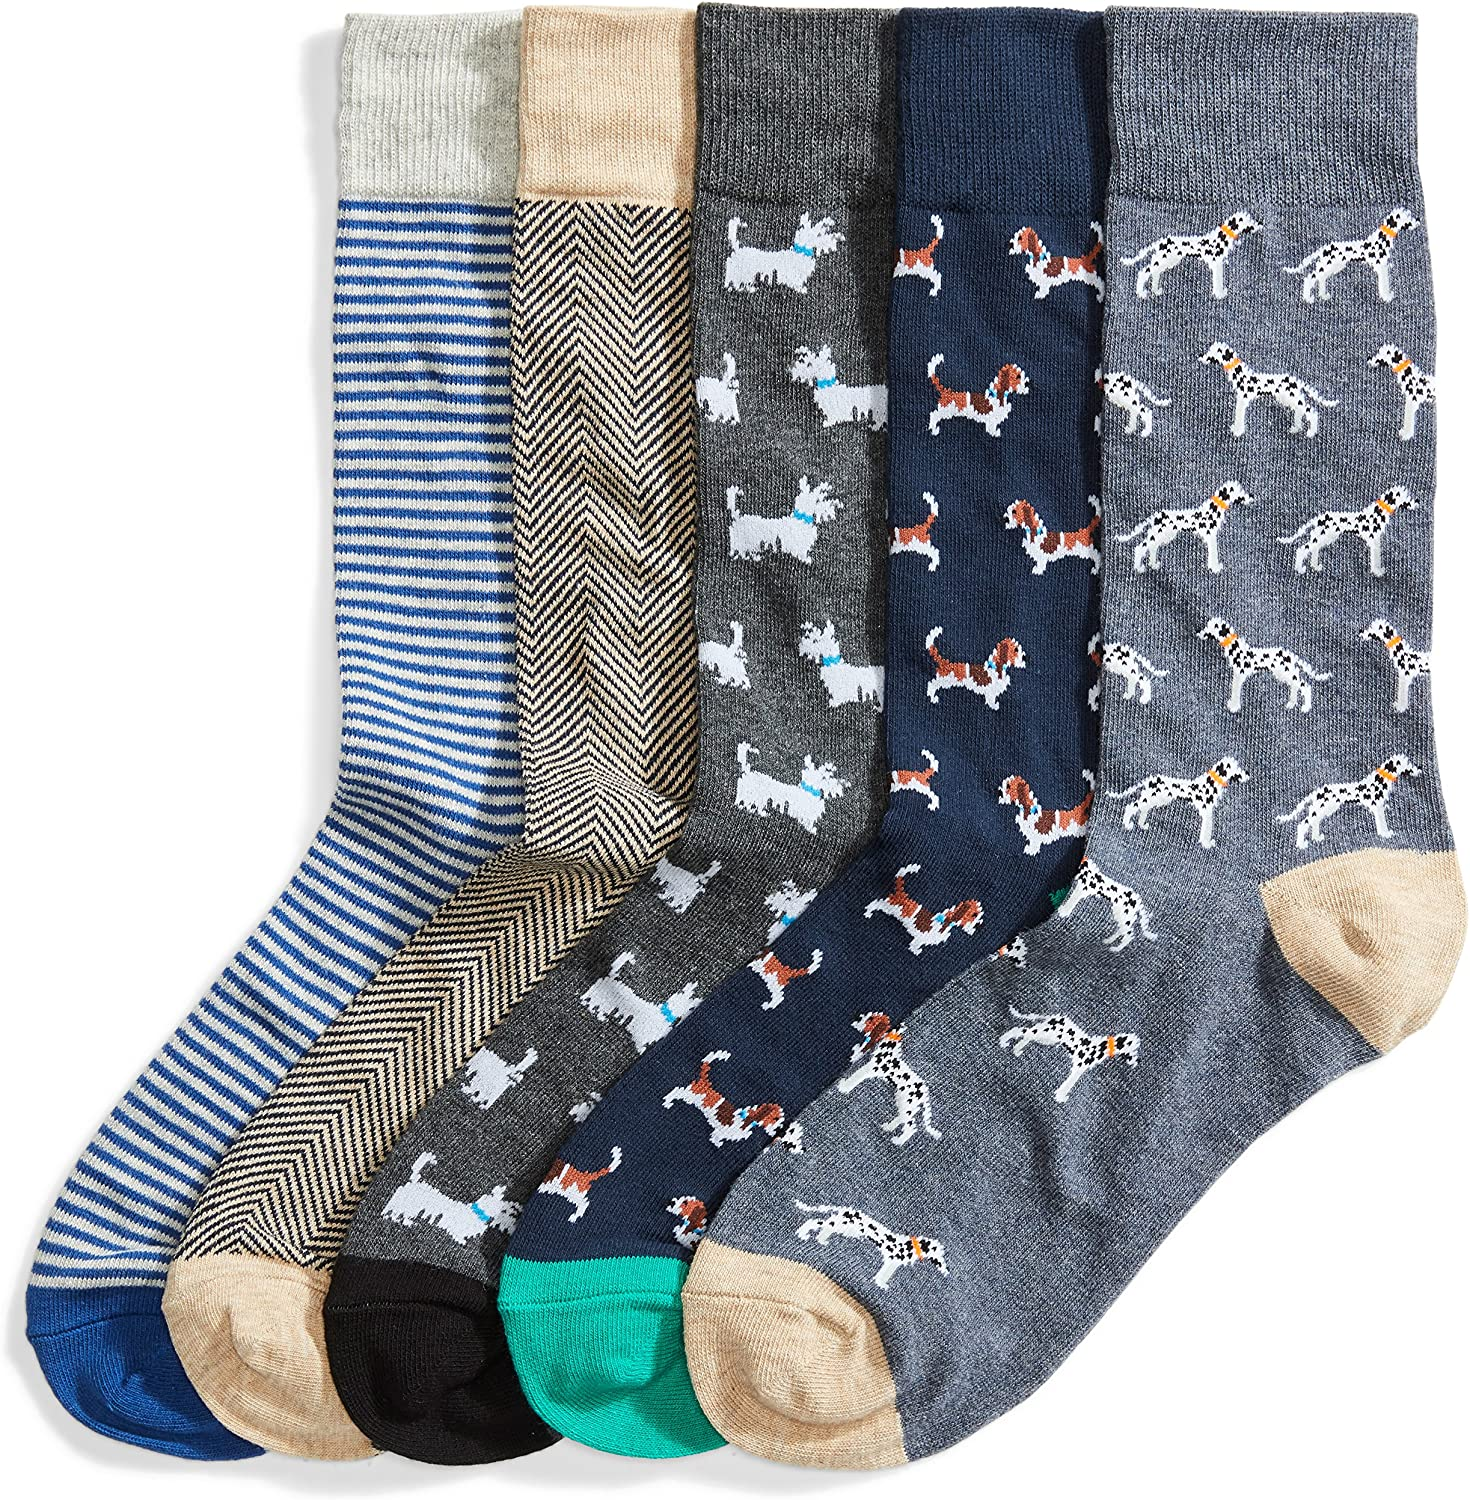 Top 9 Mens Mismatched Food Socks